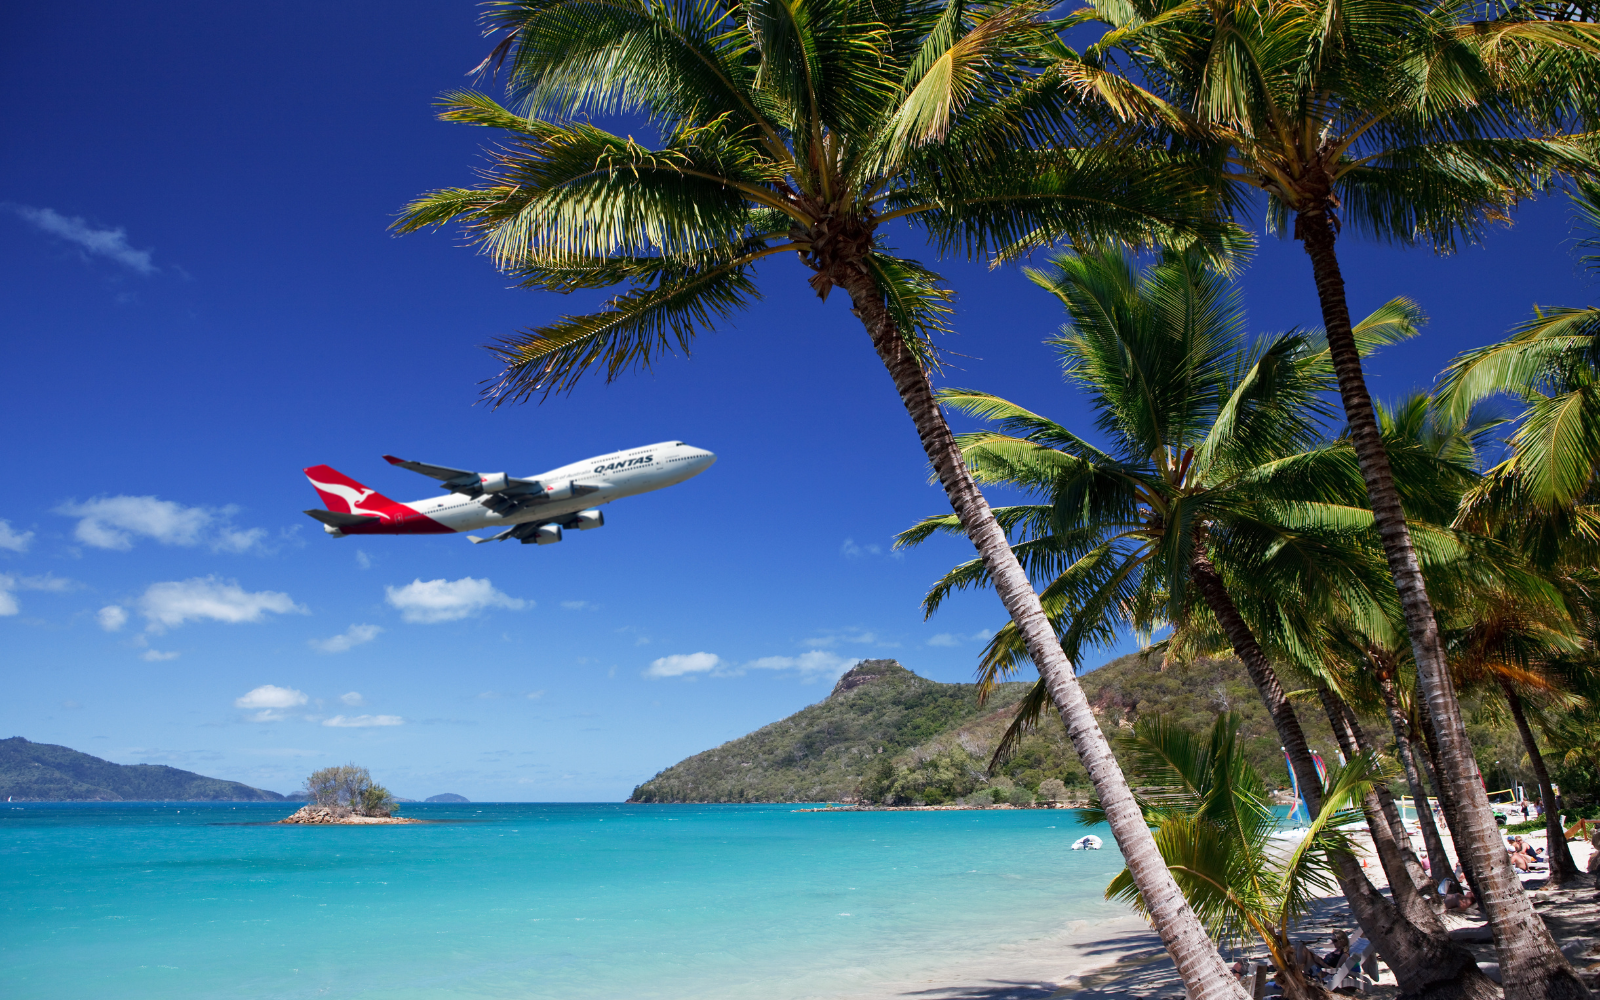 Qantas Lands in the Whitsundays after a Seventeen year absence